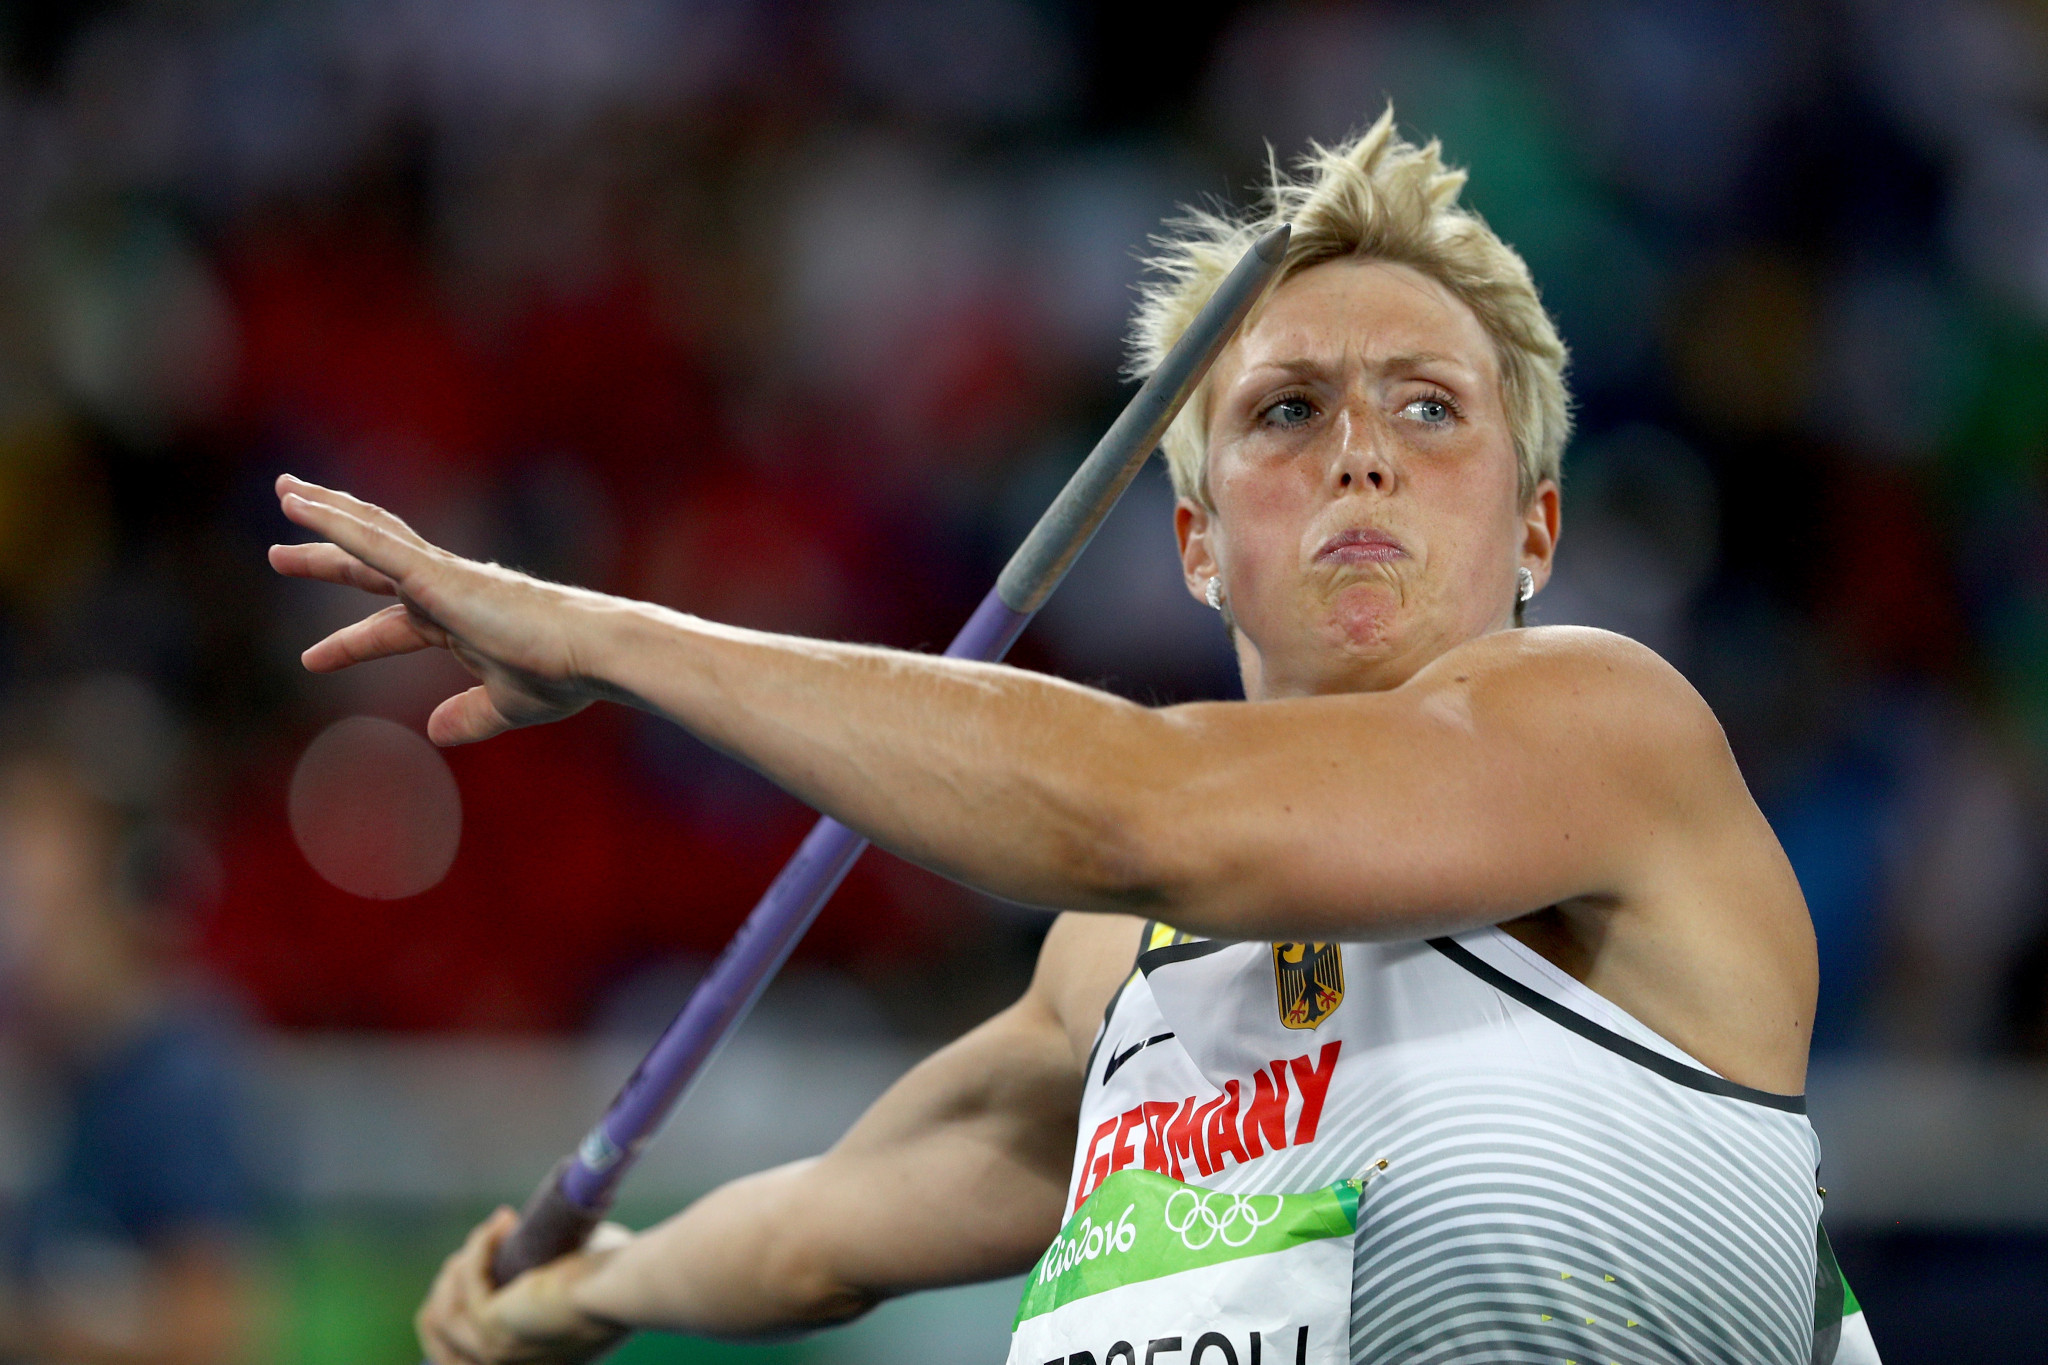 Obergföll hits out at anti-doping efforts after collecting Olympic silver 11 years late